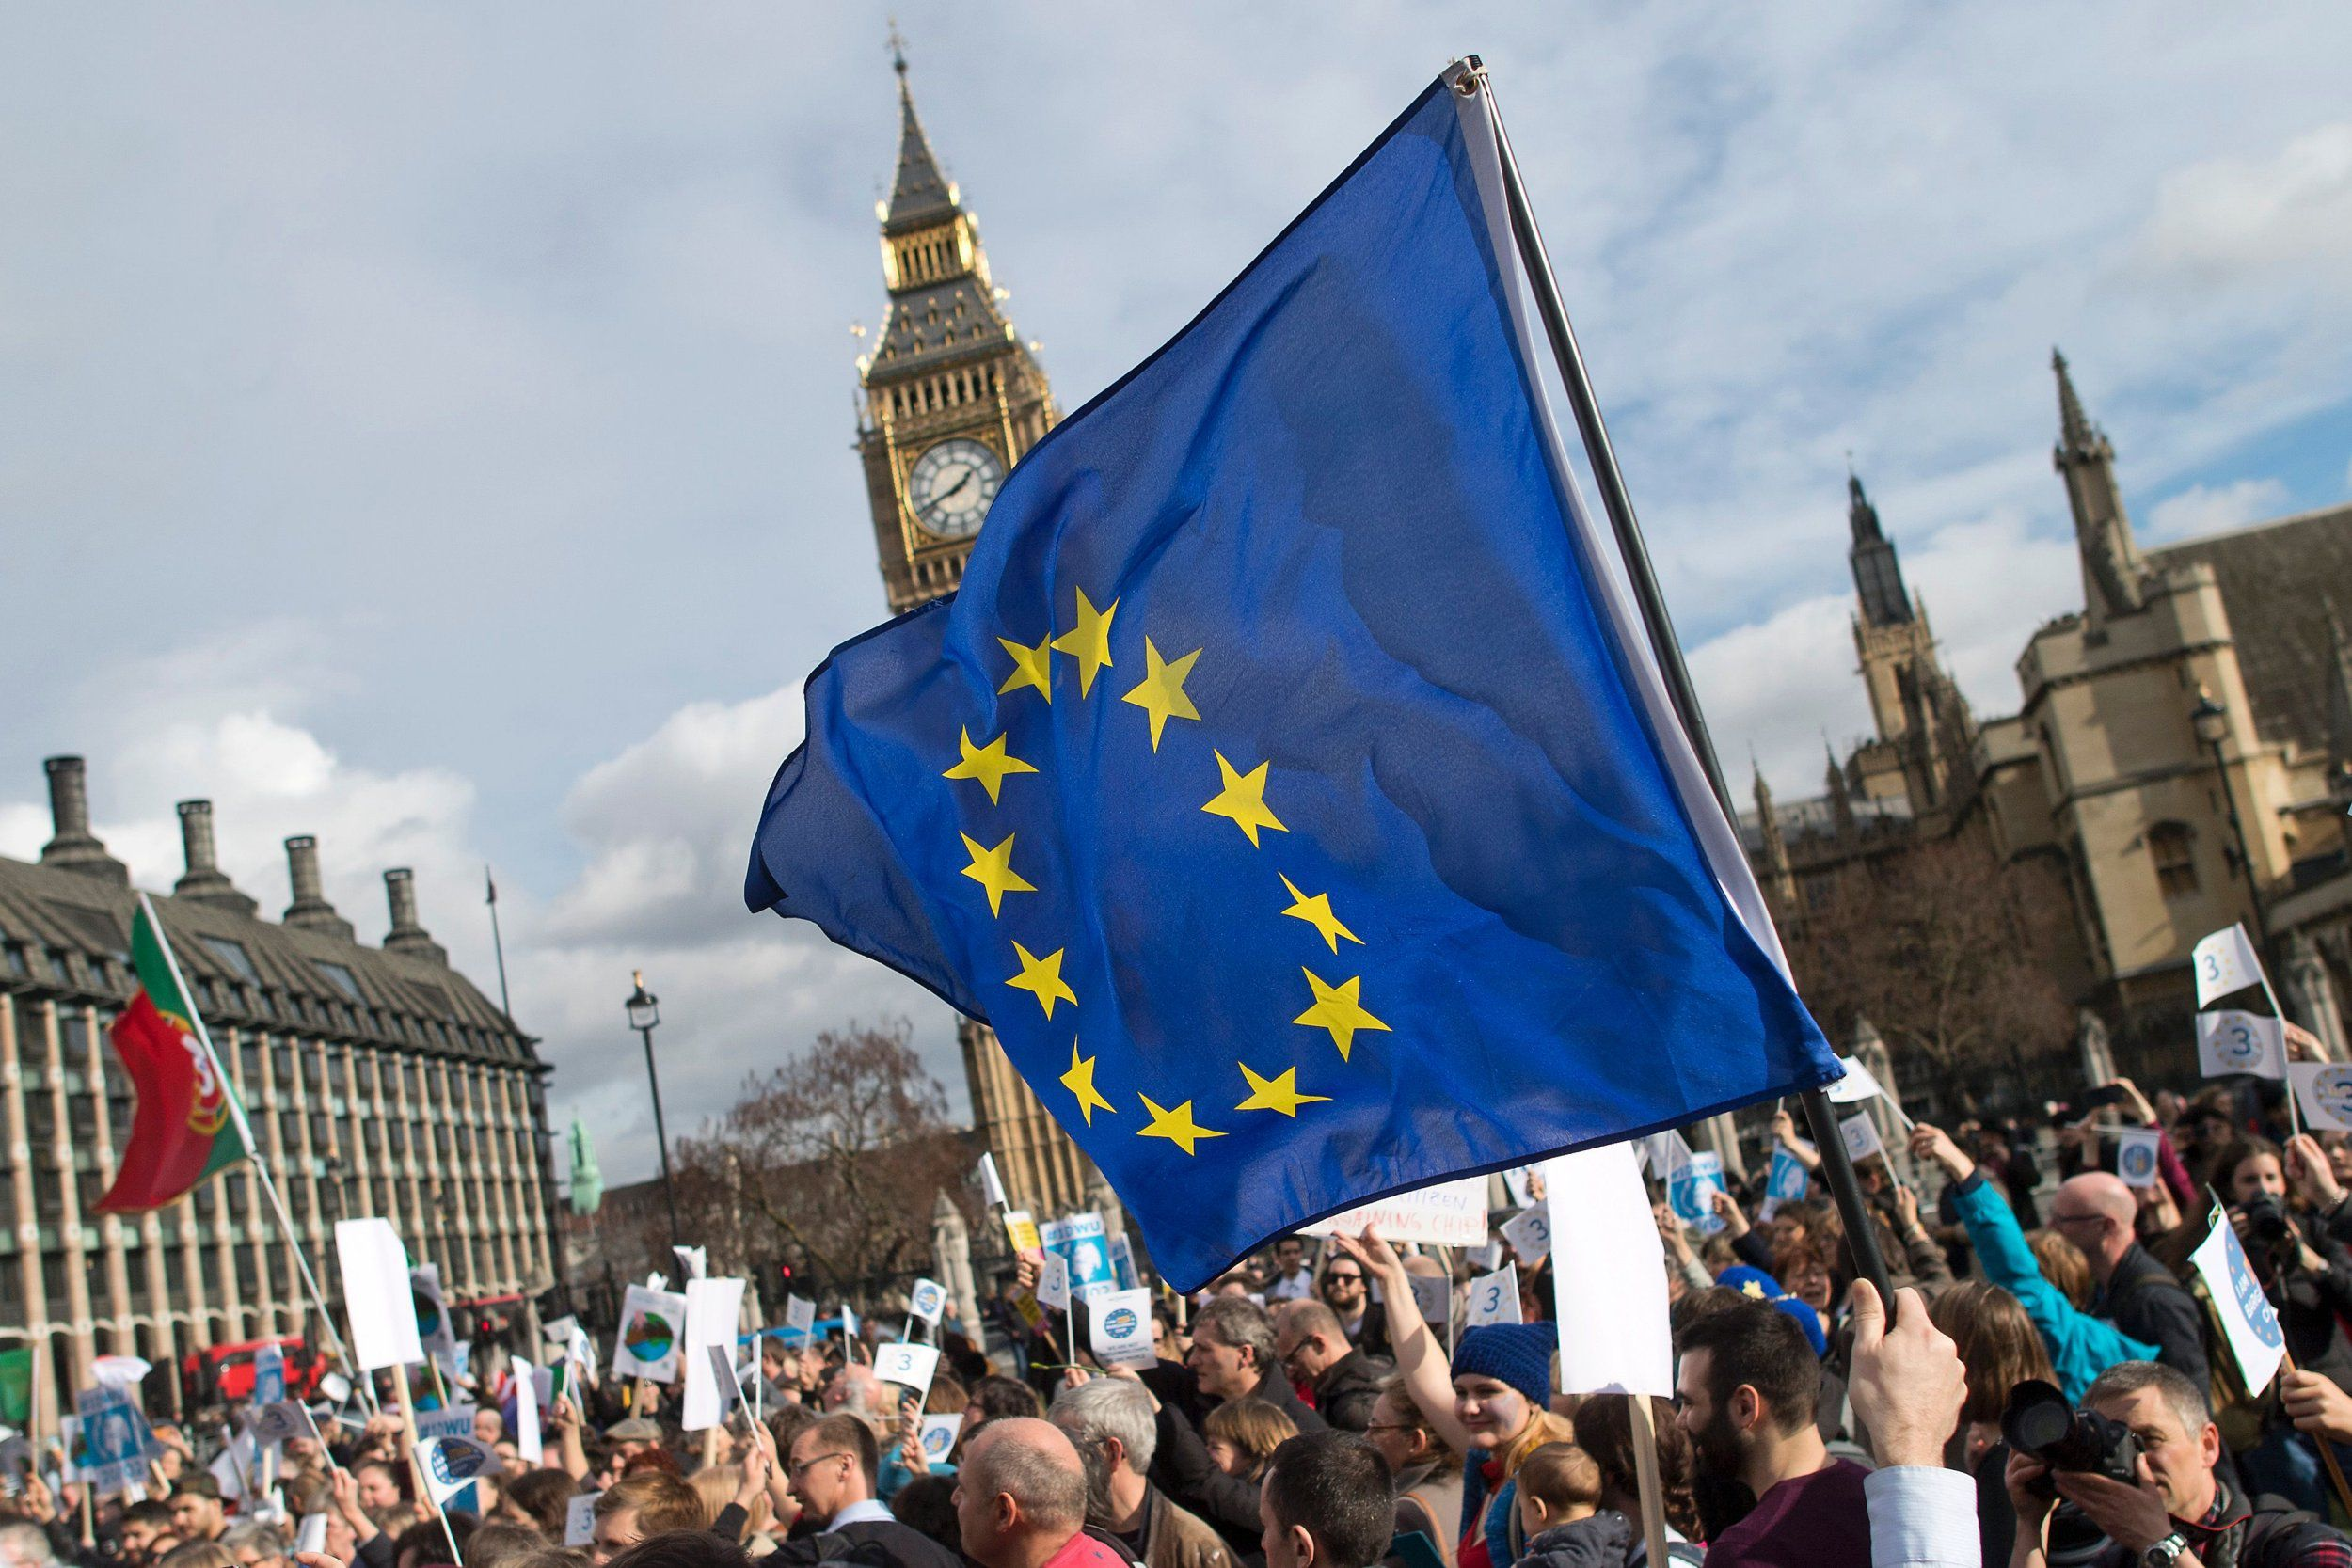 Tens of thousands sign up to march on Parliament in stop